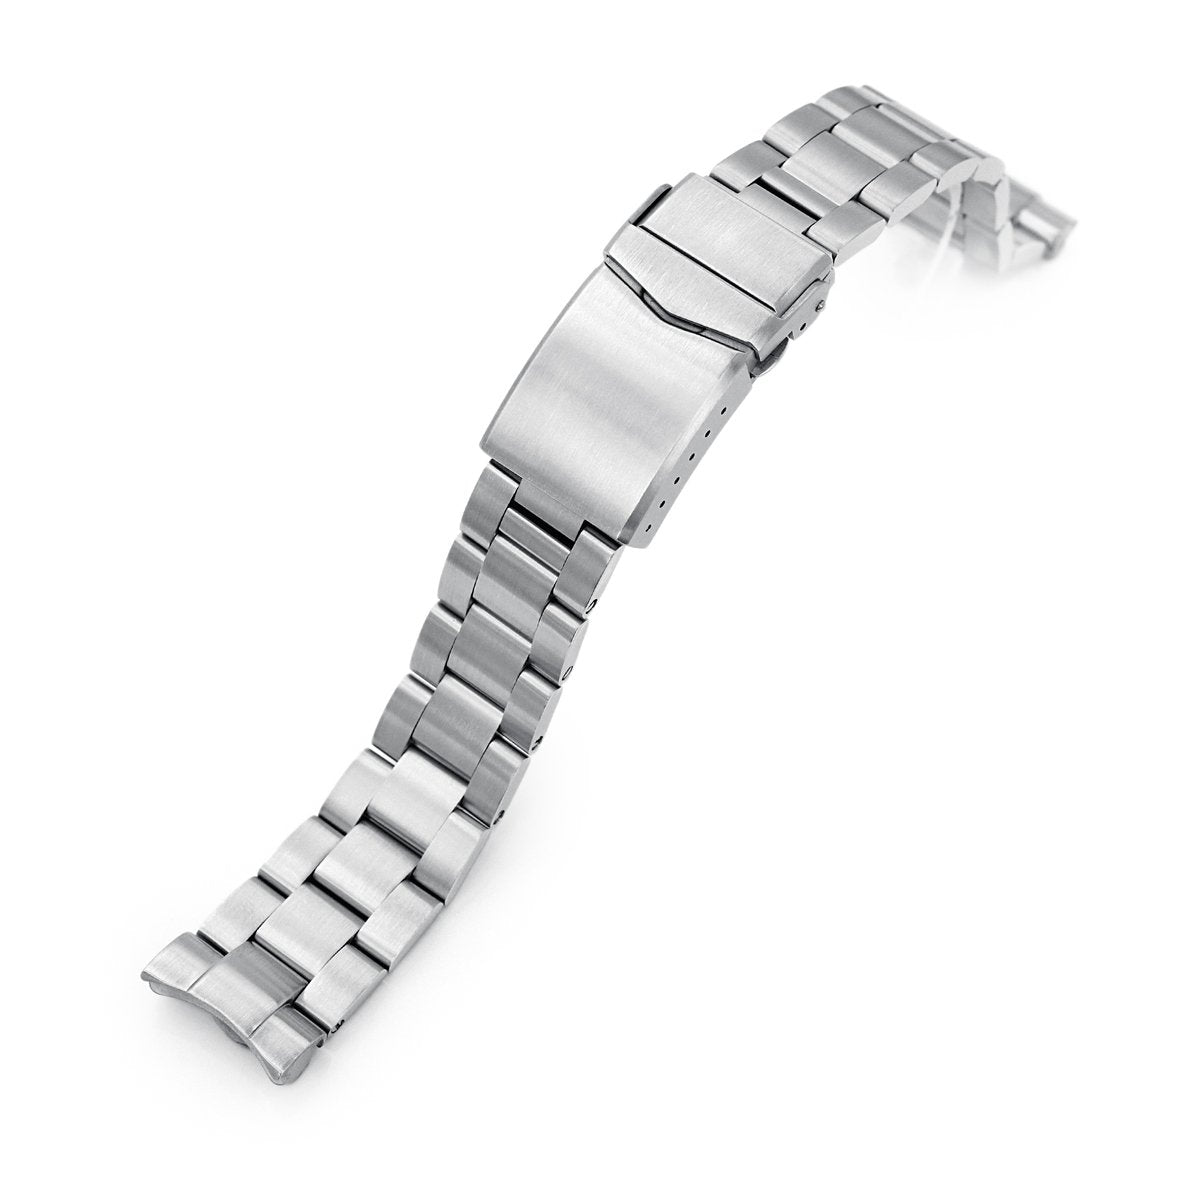 20mm Super-O Boyer 316L Stainless Steel Watch Bracelet for Seiko Mini Turtles SRPC35 V-Clasp Brushed Strapcode Watch Bands